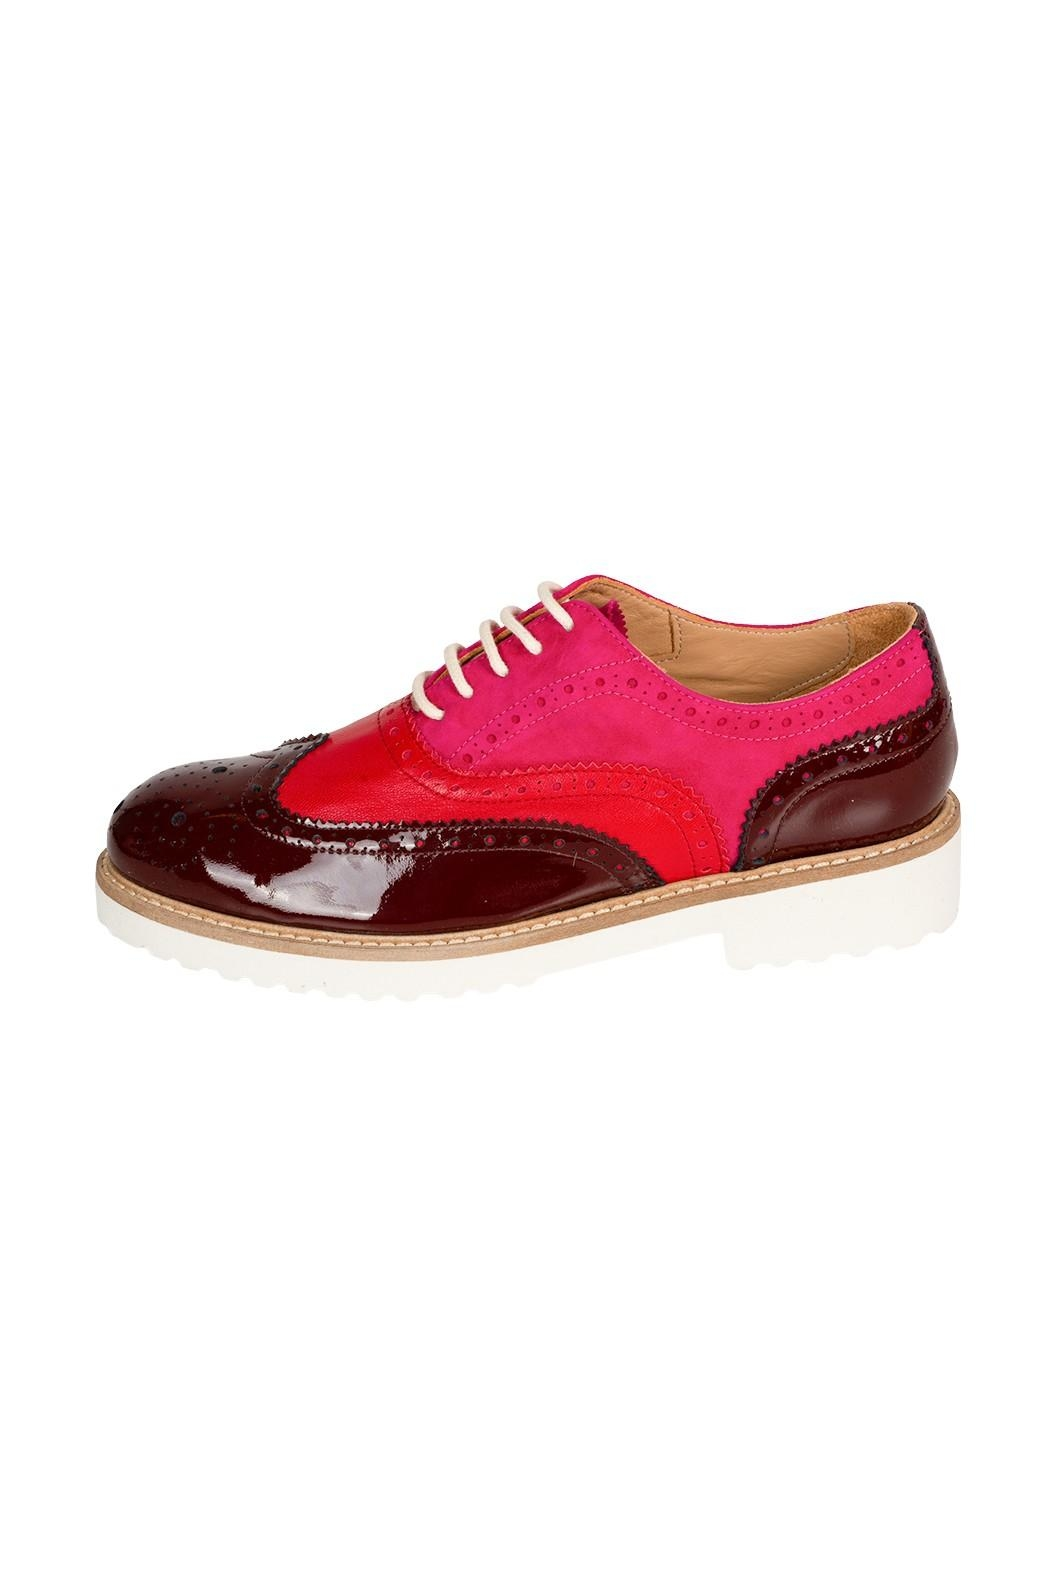 Pascucci Thick-Sole Leather Brogue - Main Image